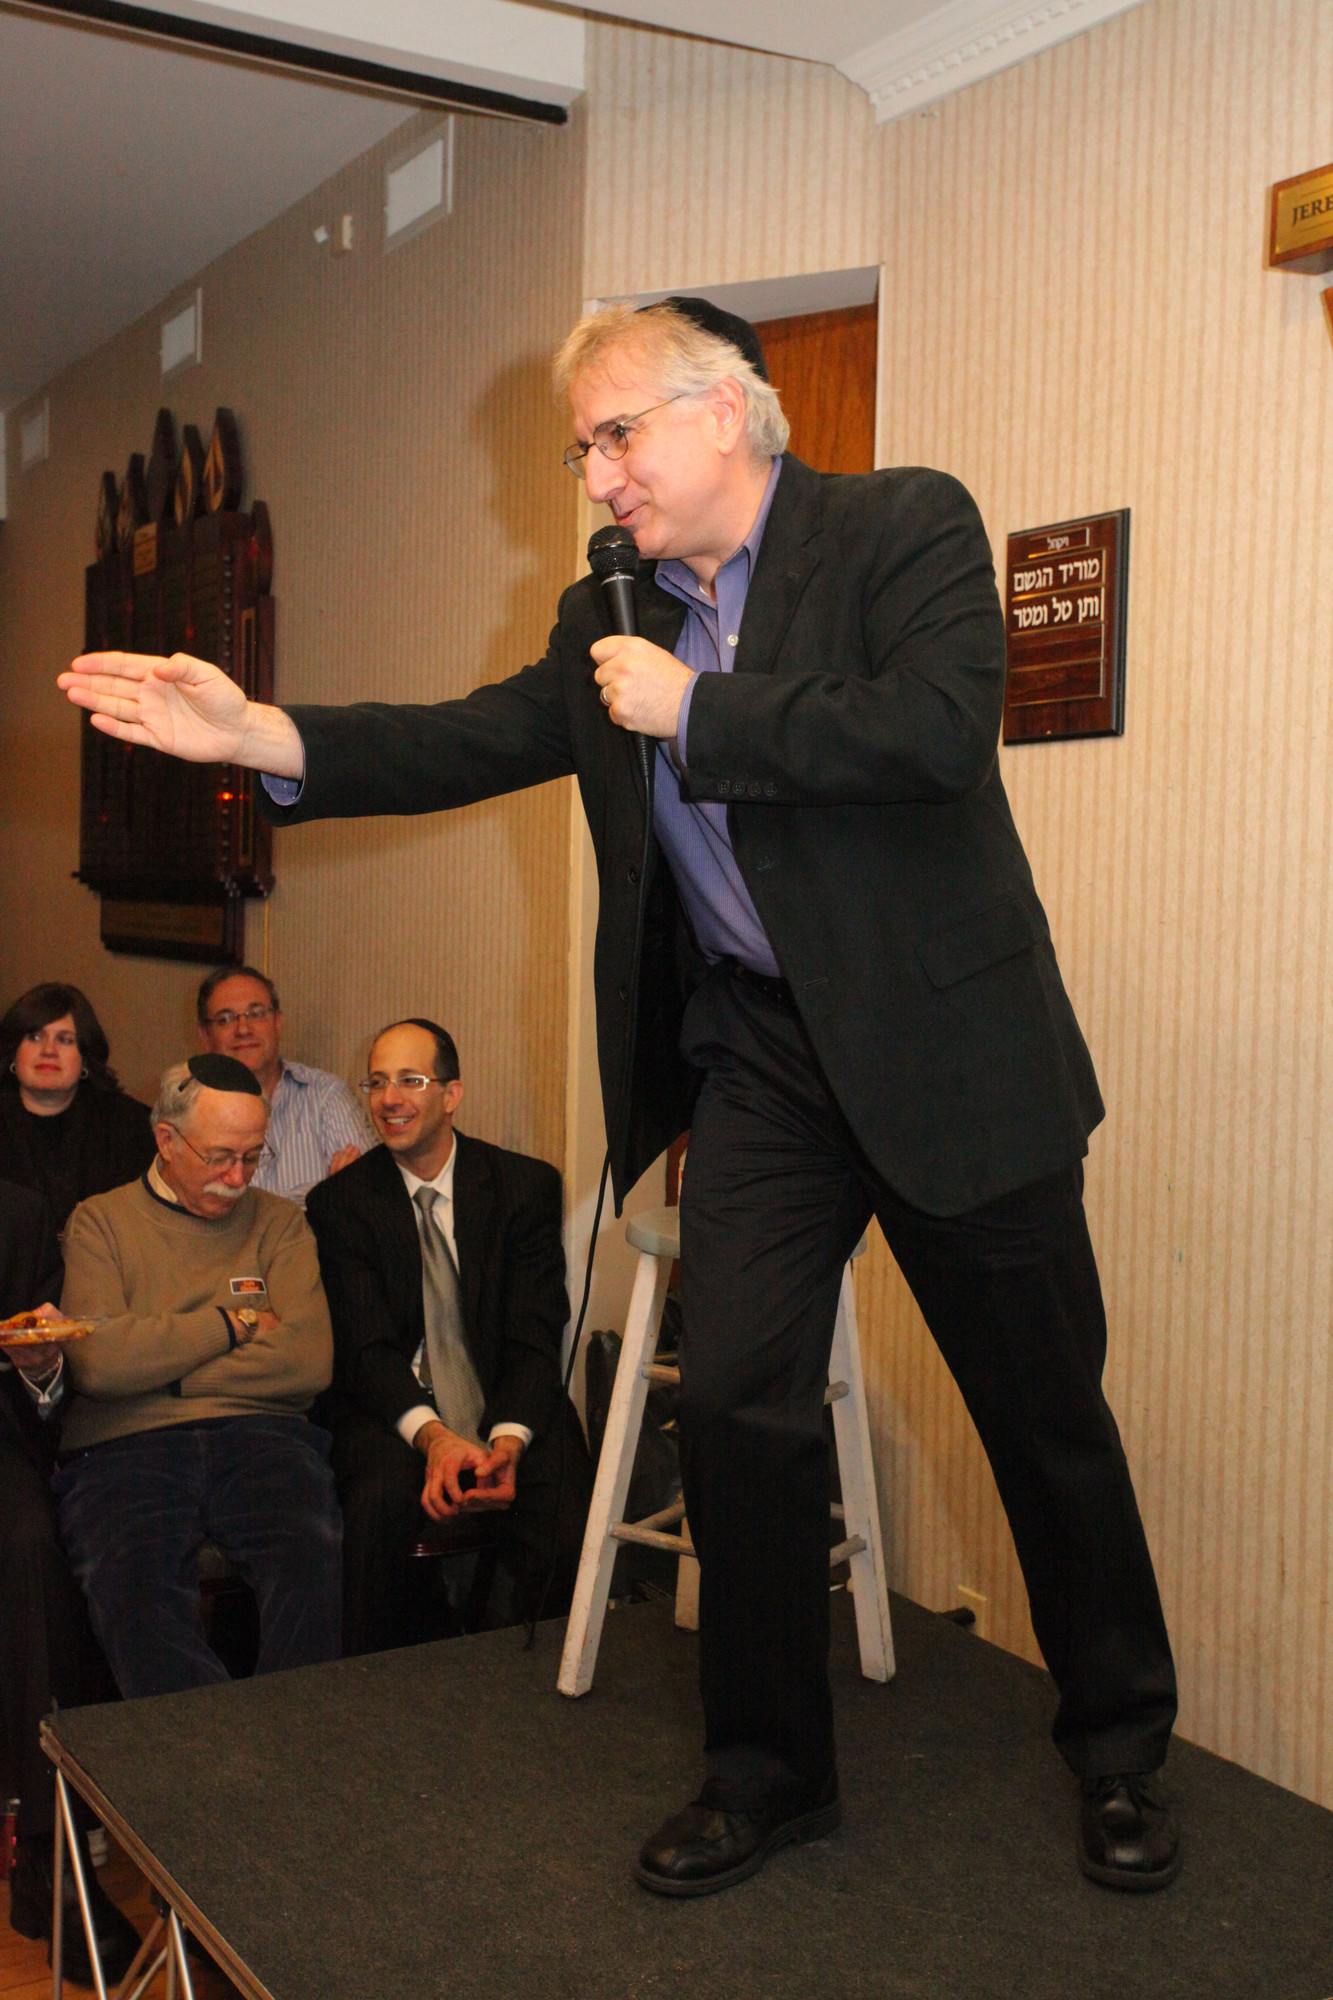 An animated Randy Levin makes a point as he entertained during Comedy Night.